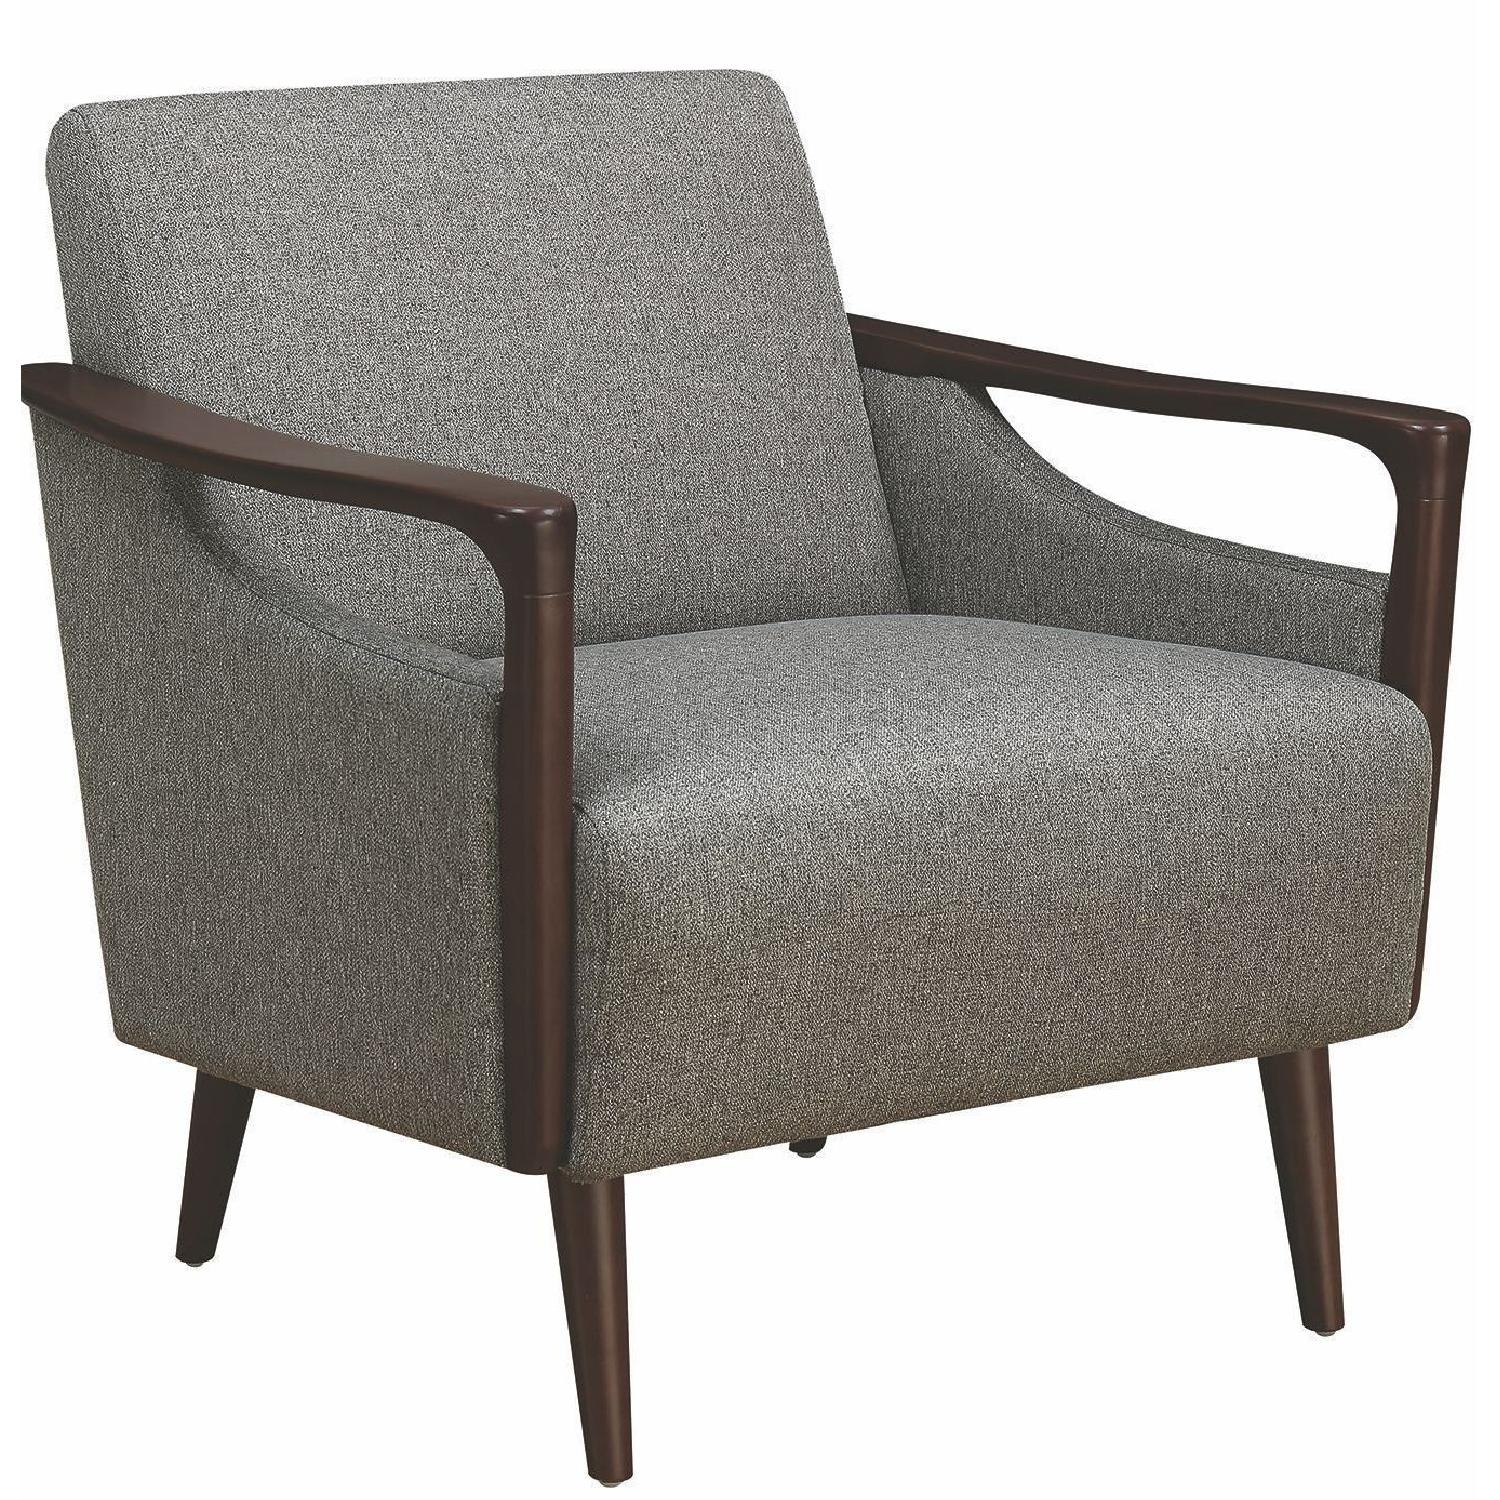 MidCentury Modern Accent Chair in Grey Fabric w Wood